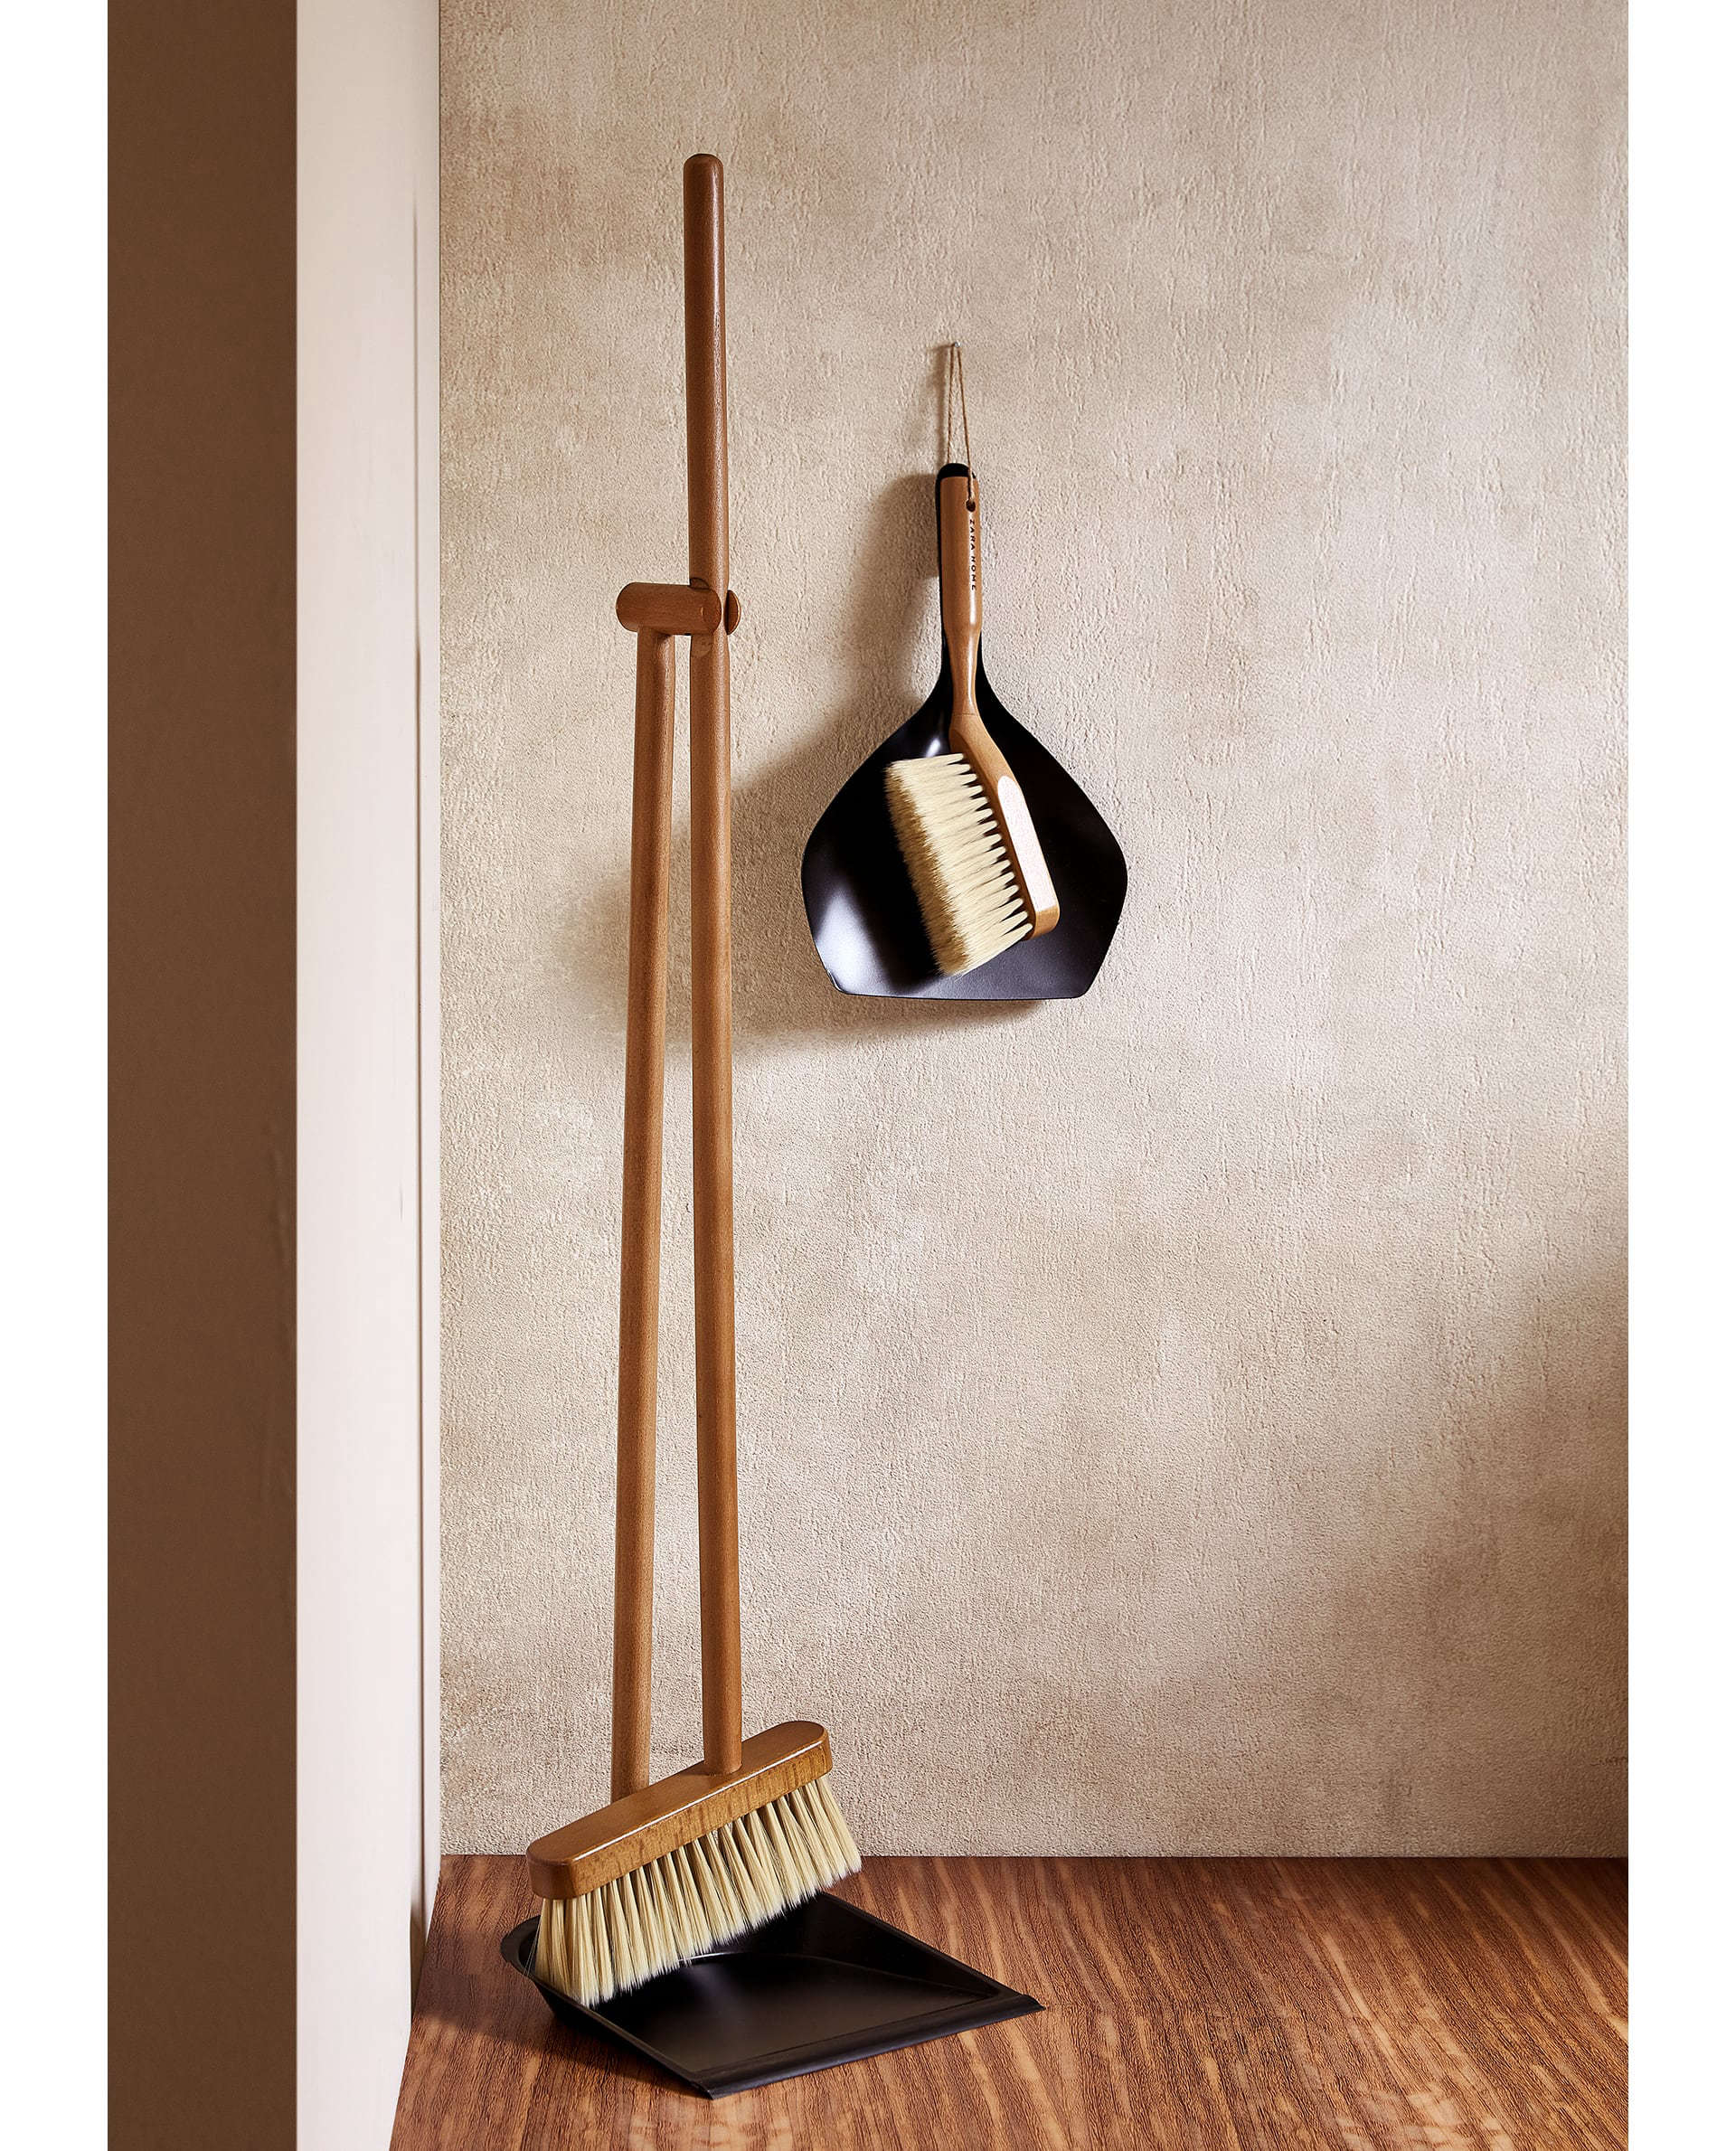 Wooden Dustpan and Brush Set from Zara Home